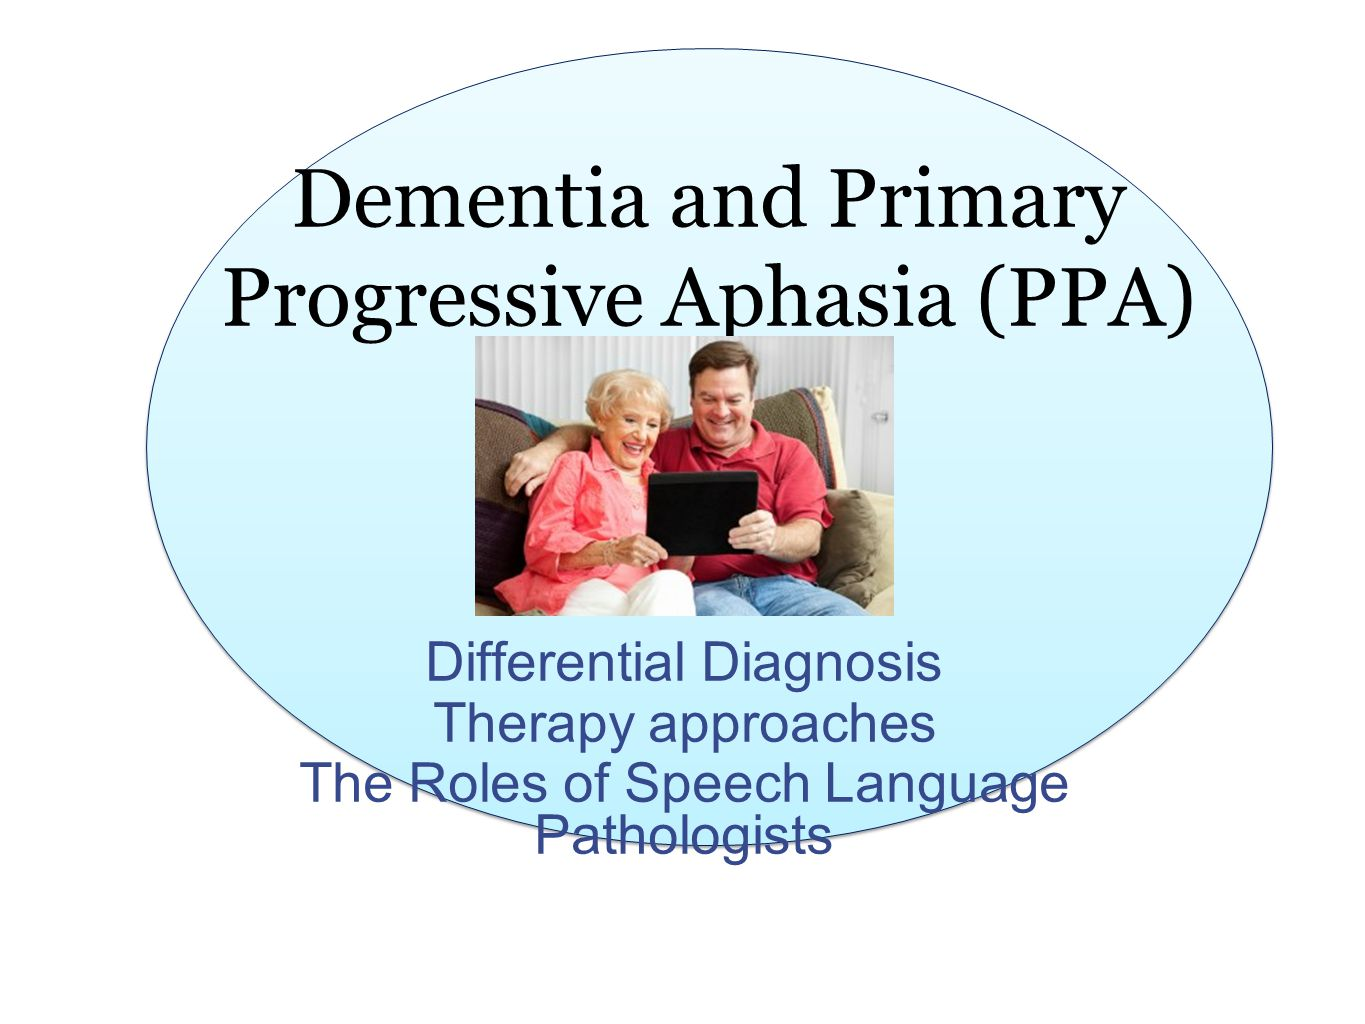 Dementia and Primary Progressive Aphasia (PPA) Differential Diagnosis Therapy approaches The Roles of Speech Language Pathologists